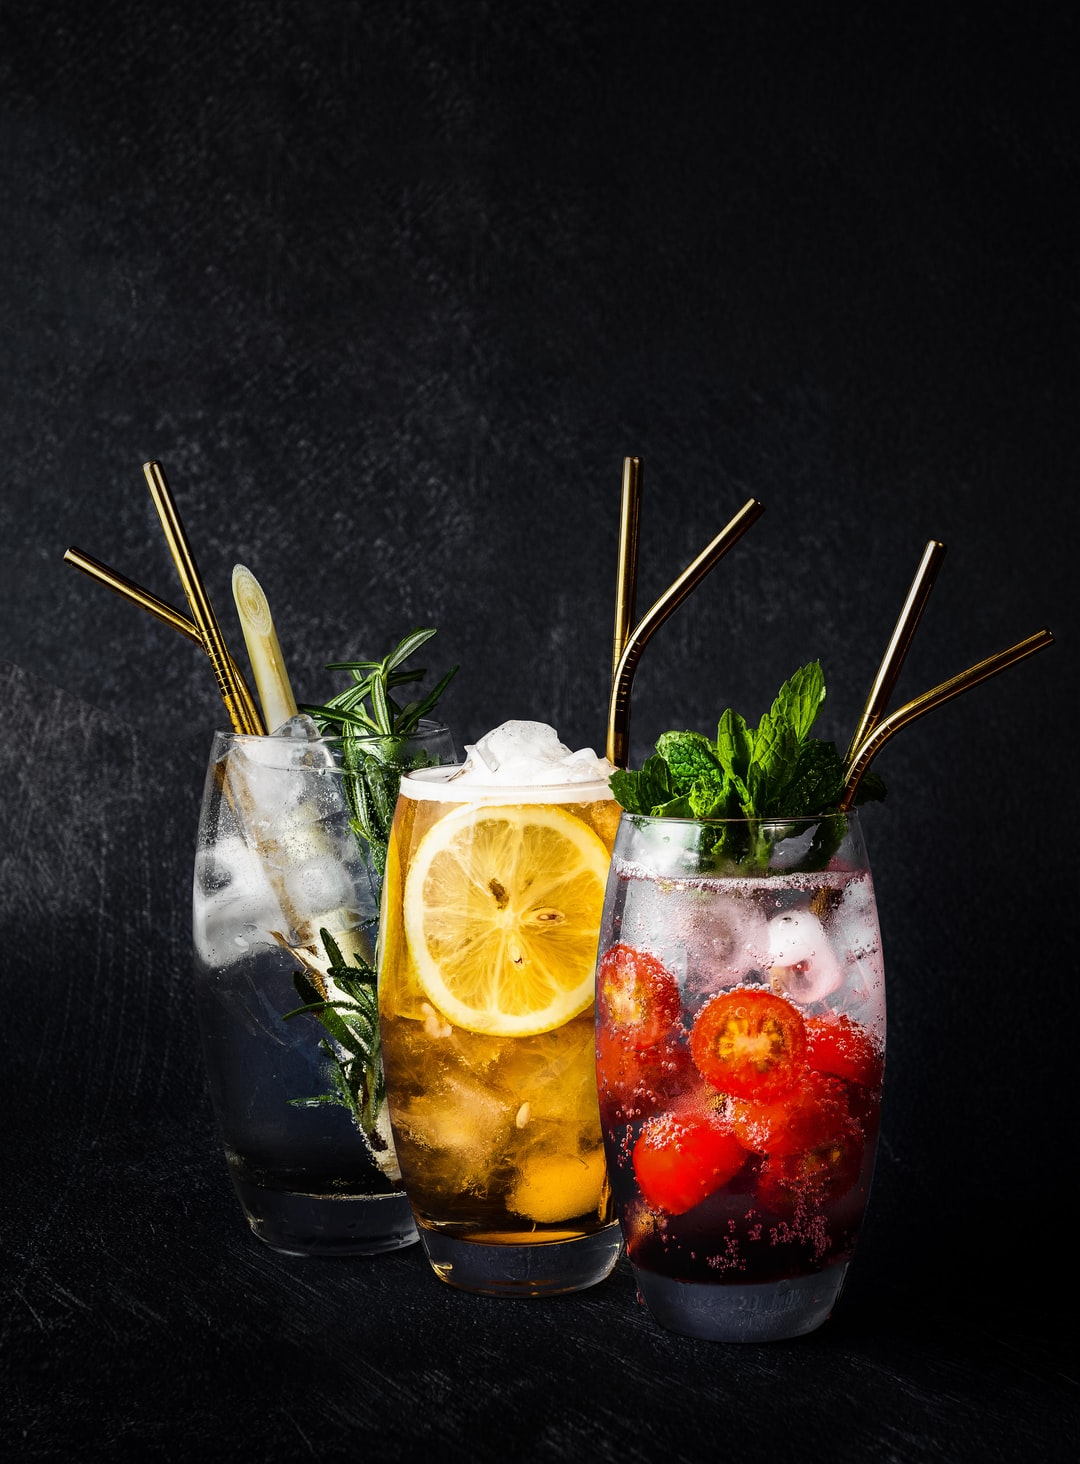 500 Drink Pictures Hd Download Free Images On Unsplash